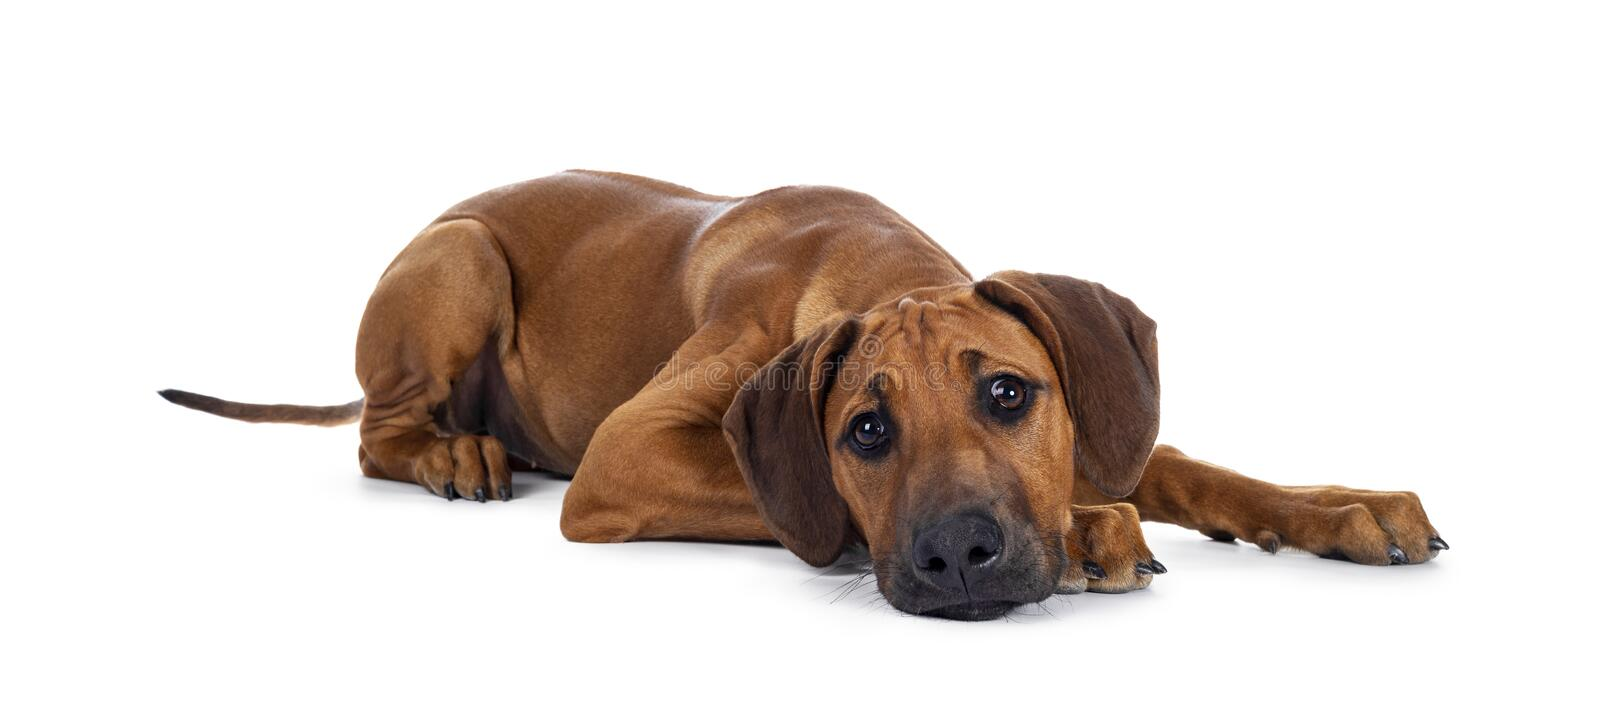 Sweet Rhodesian Ridgeback puppy on white. Cute wheaten Rhodesian Ridgeback puppy dog with dark muzzle, laying down side ways facing front. Looking at camera with royalty free stock images